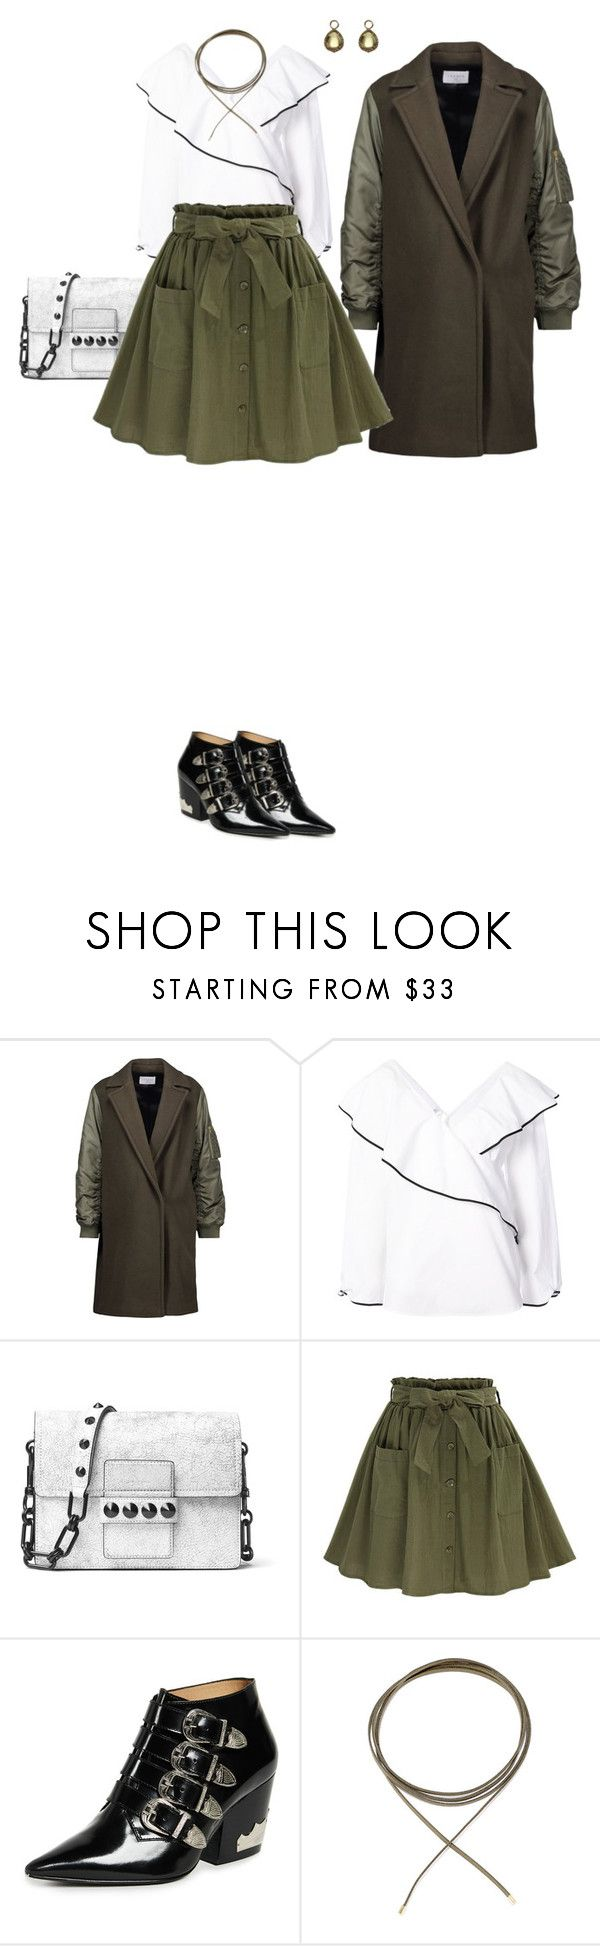 """""""Aceituna"""" by maryjayseven ❤ liked on Polyvore featuring Sandro, Diane Von Furstenberg, Michael Kors, Toga, Annoushka, contest, outfit, outfitoftheday and cowboyboots"""